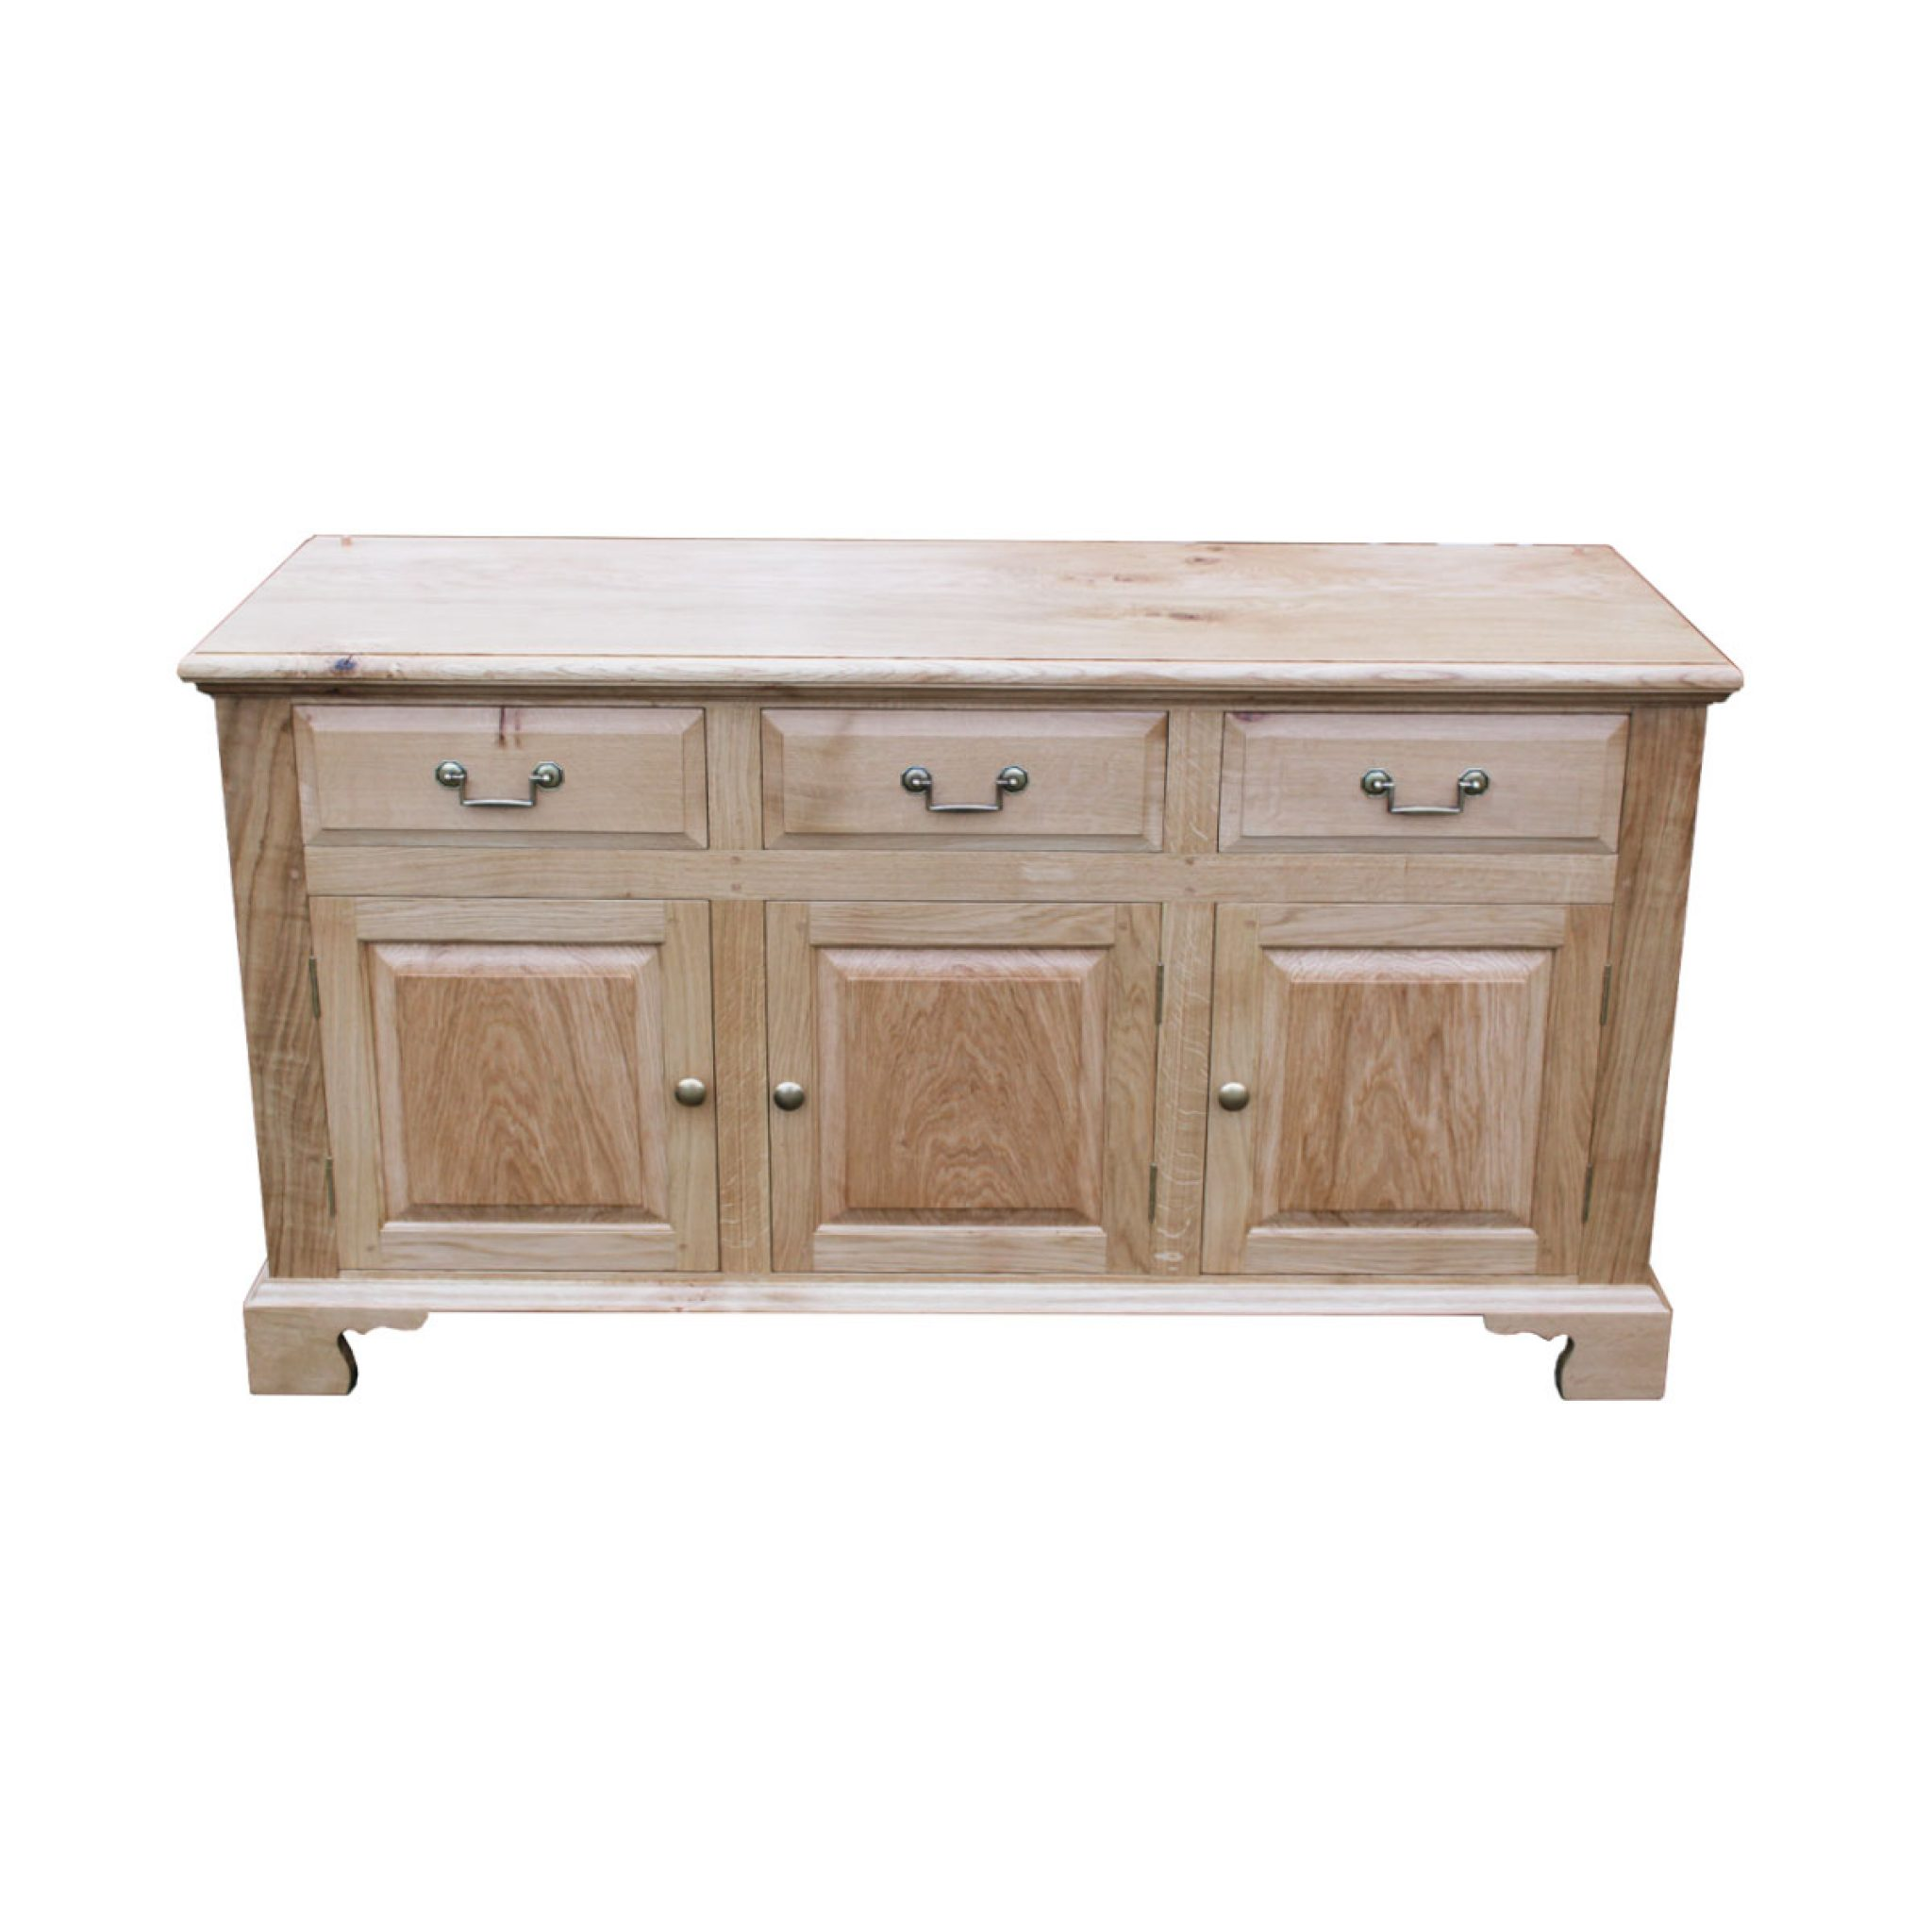 Handmade Oak Furniture Aspatria